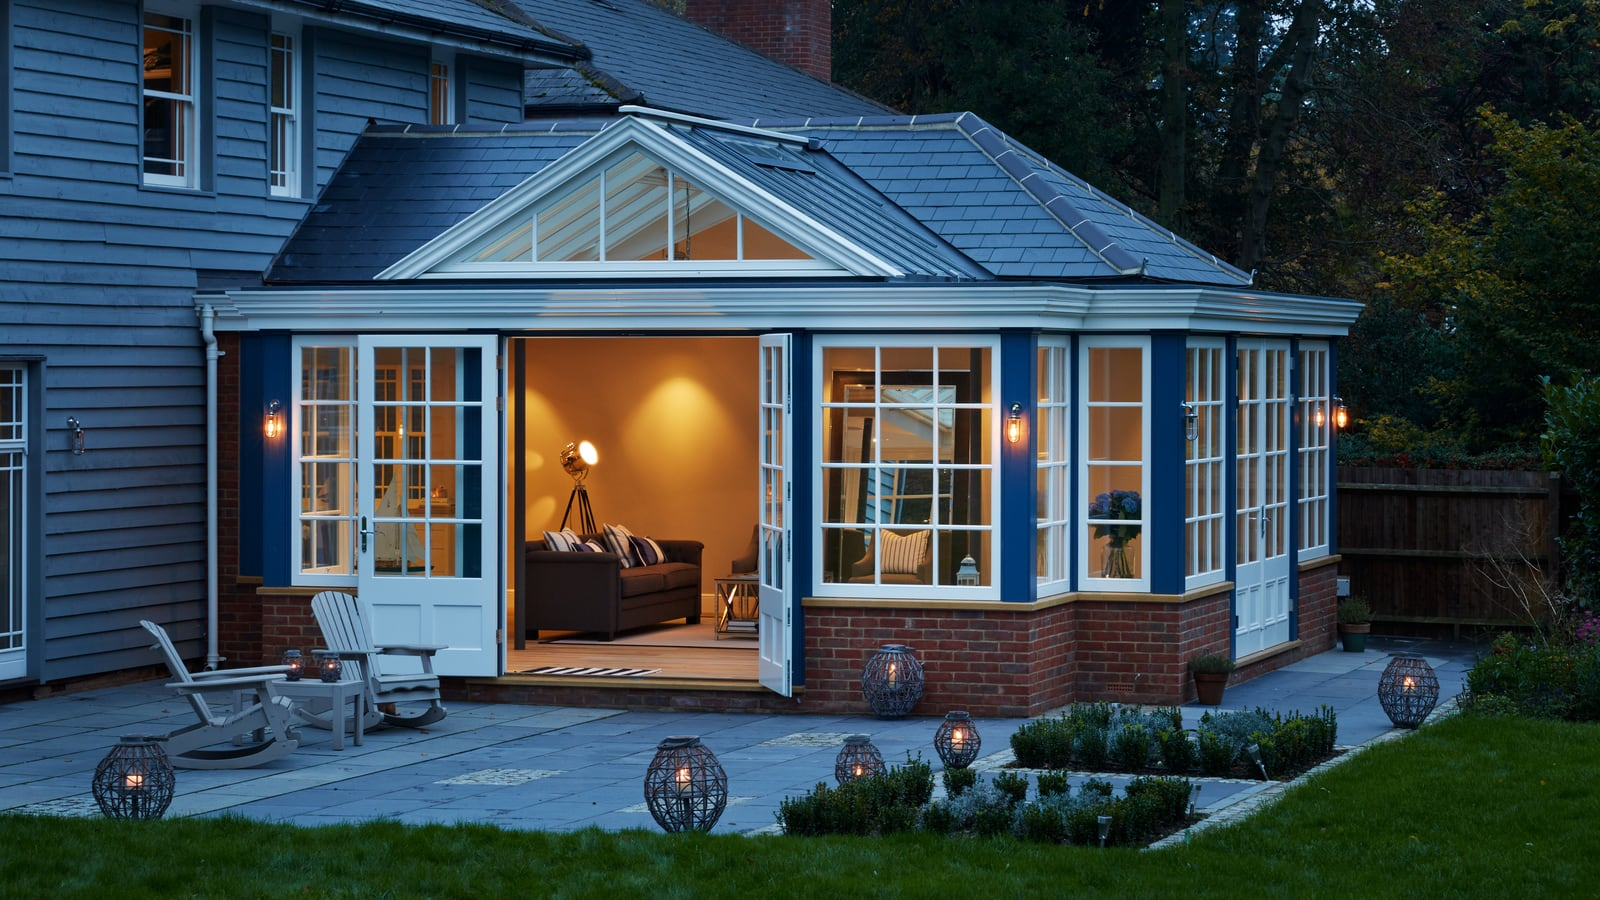 Evening lighting enhances the mood of the Garden Room